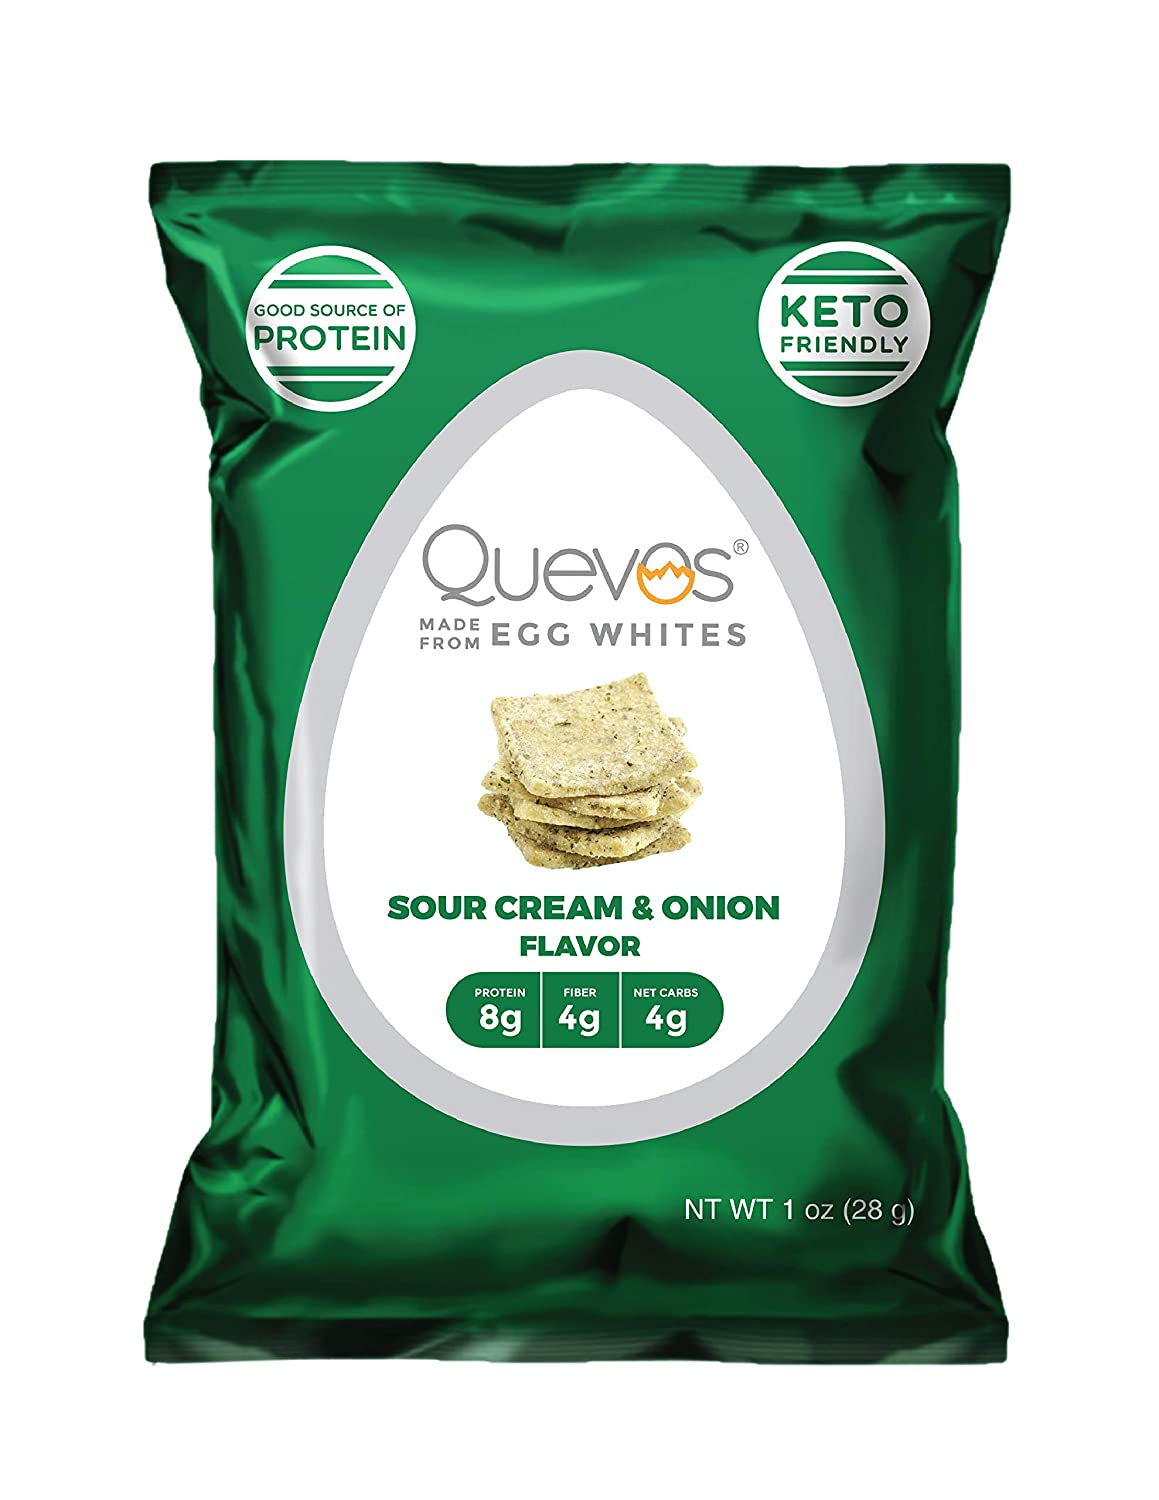 Quevos Egg Whites - Sour Cream & Onion Flavor - 1 oz bag